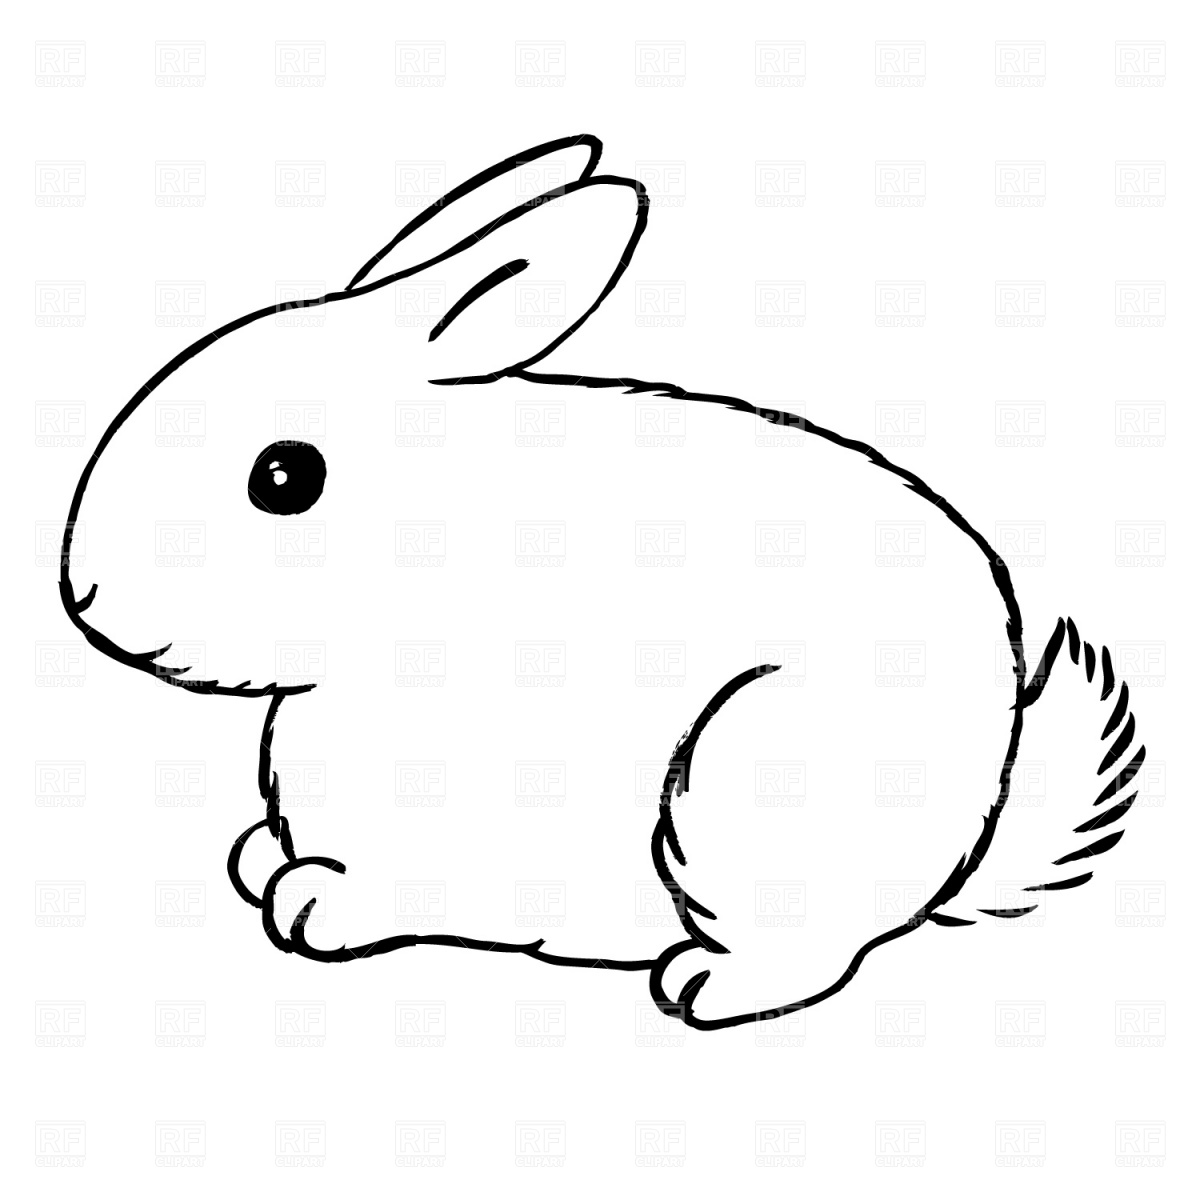 Rabbit Clipart Black And White Clipart Panda